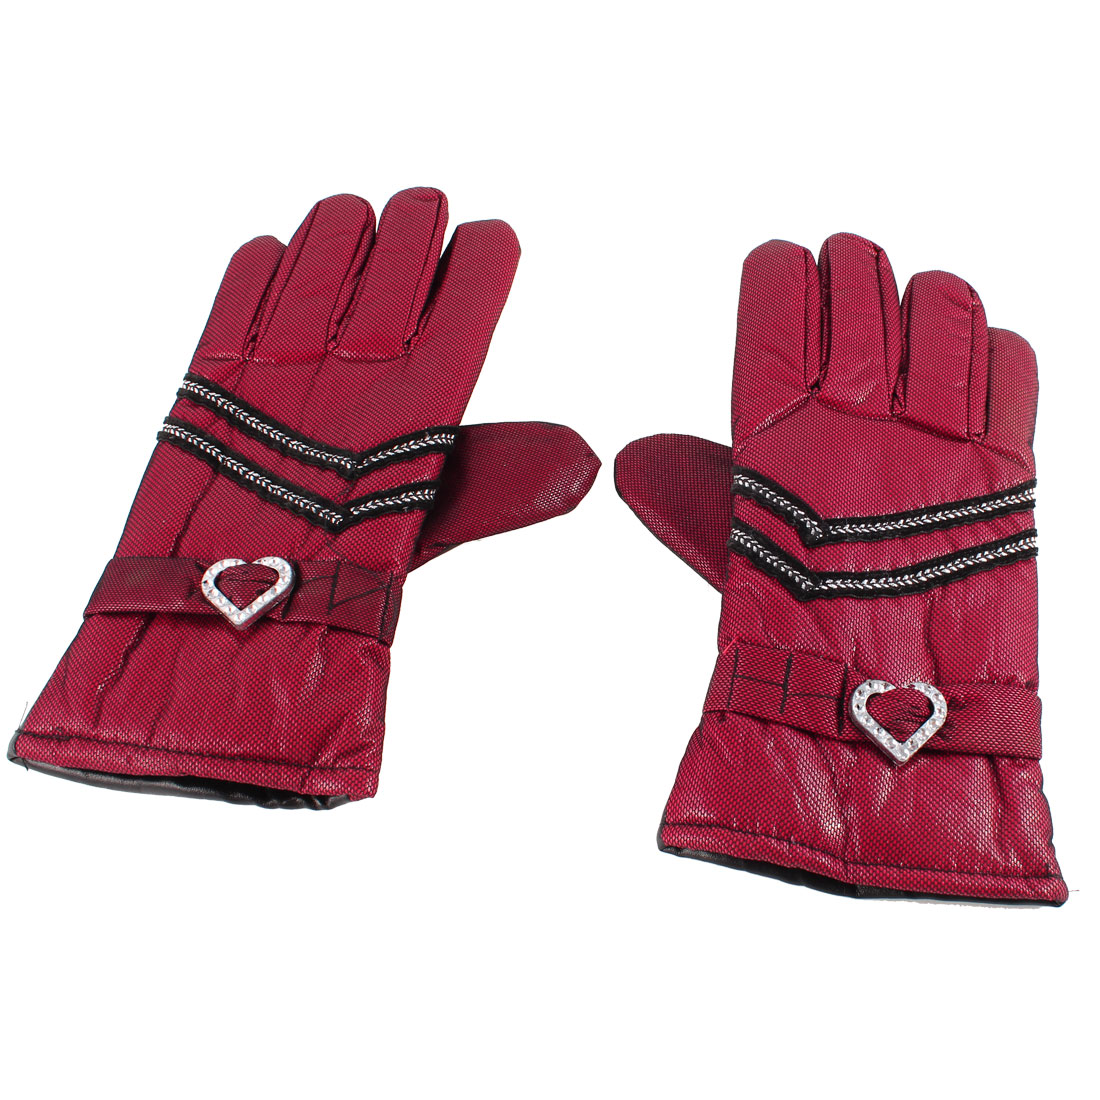 Outdoor Red Black Faux Leather Full Finger Winter Warm Gloves Pair